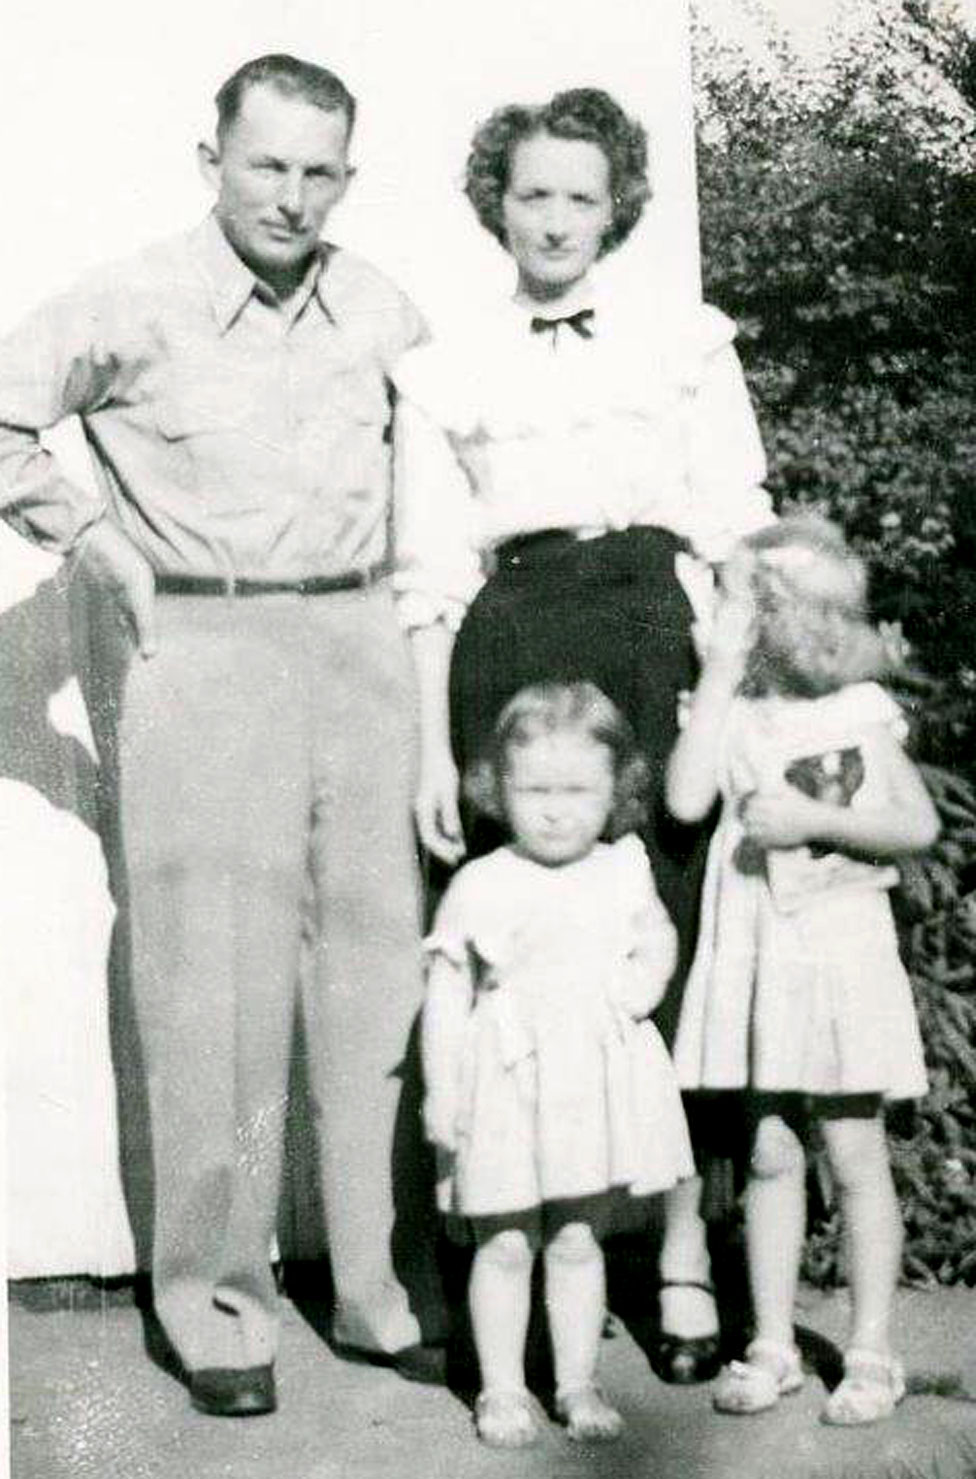 Janis Curran with her family